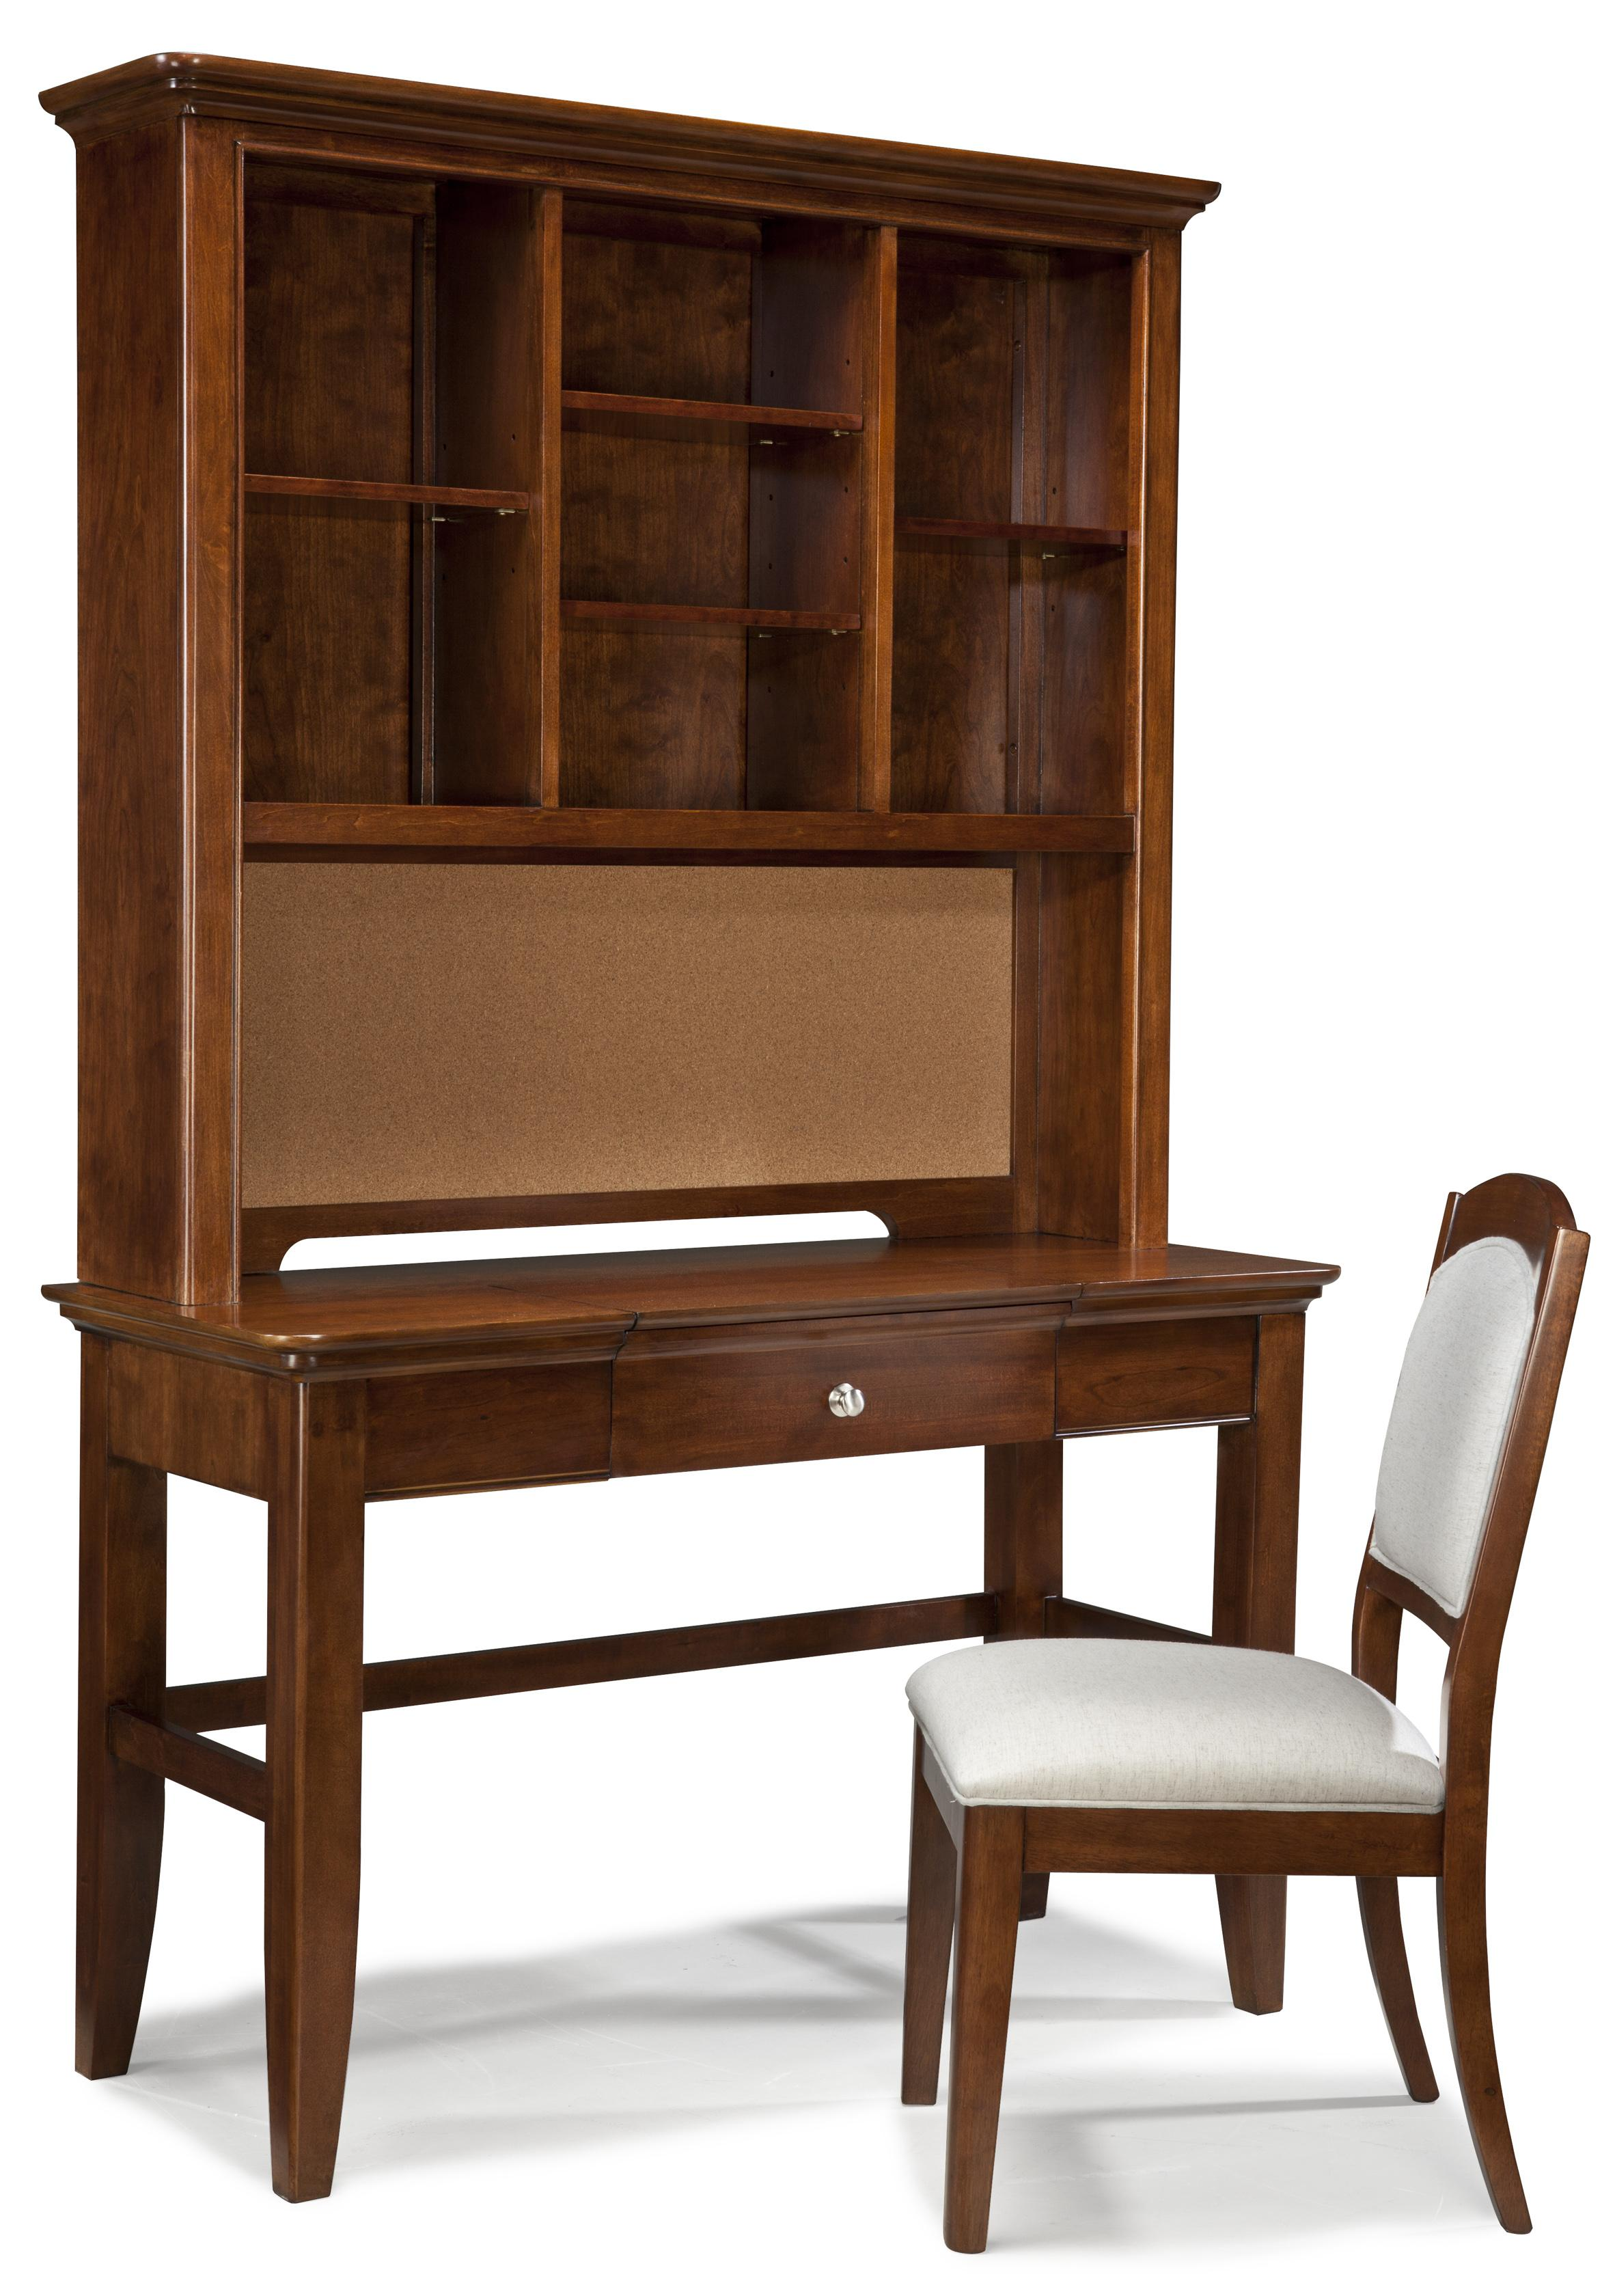 f desk id century or mid front bookshelf pieces for z drop sale cabinet storage case bookcases at furniture